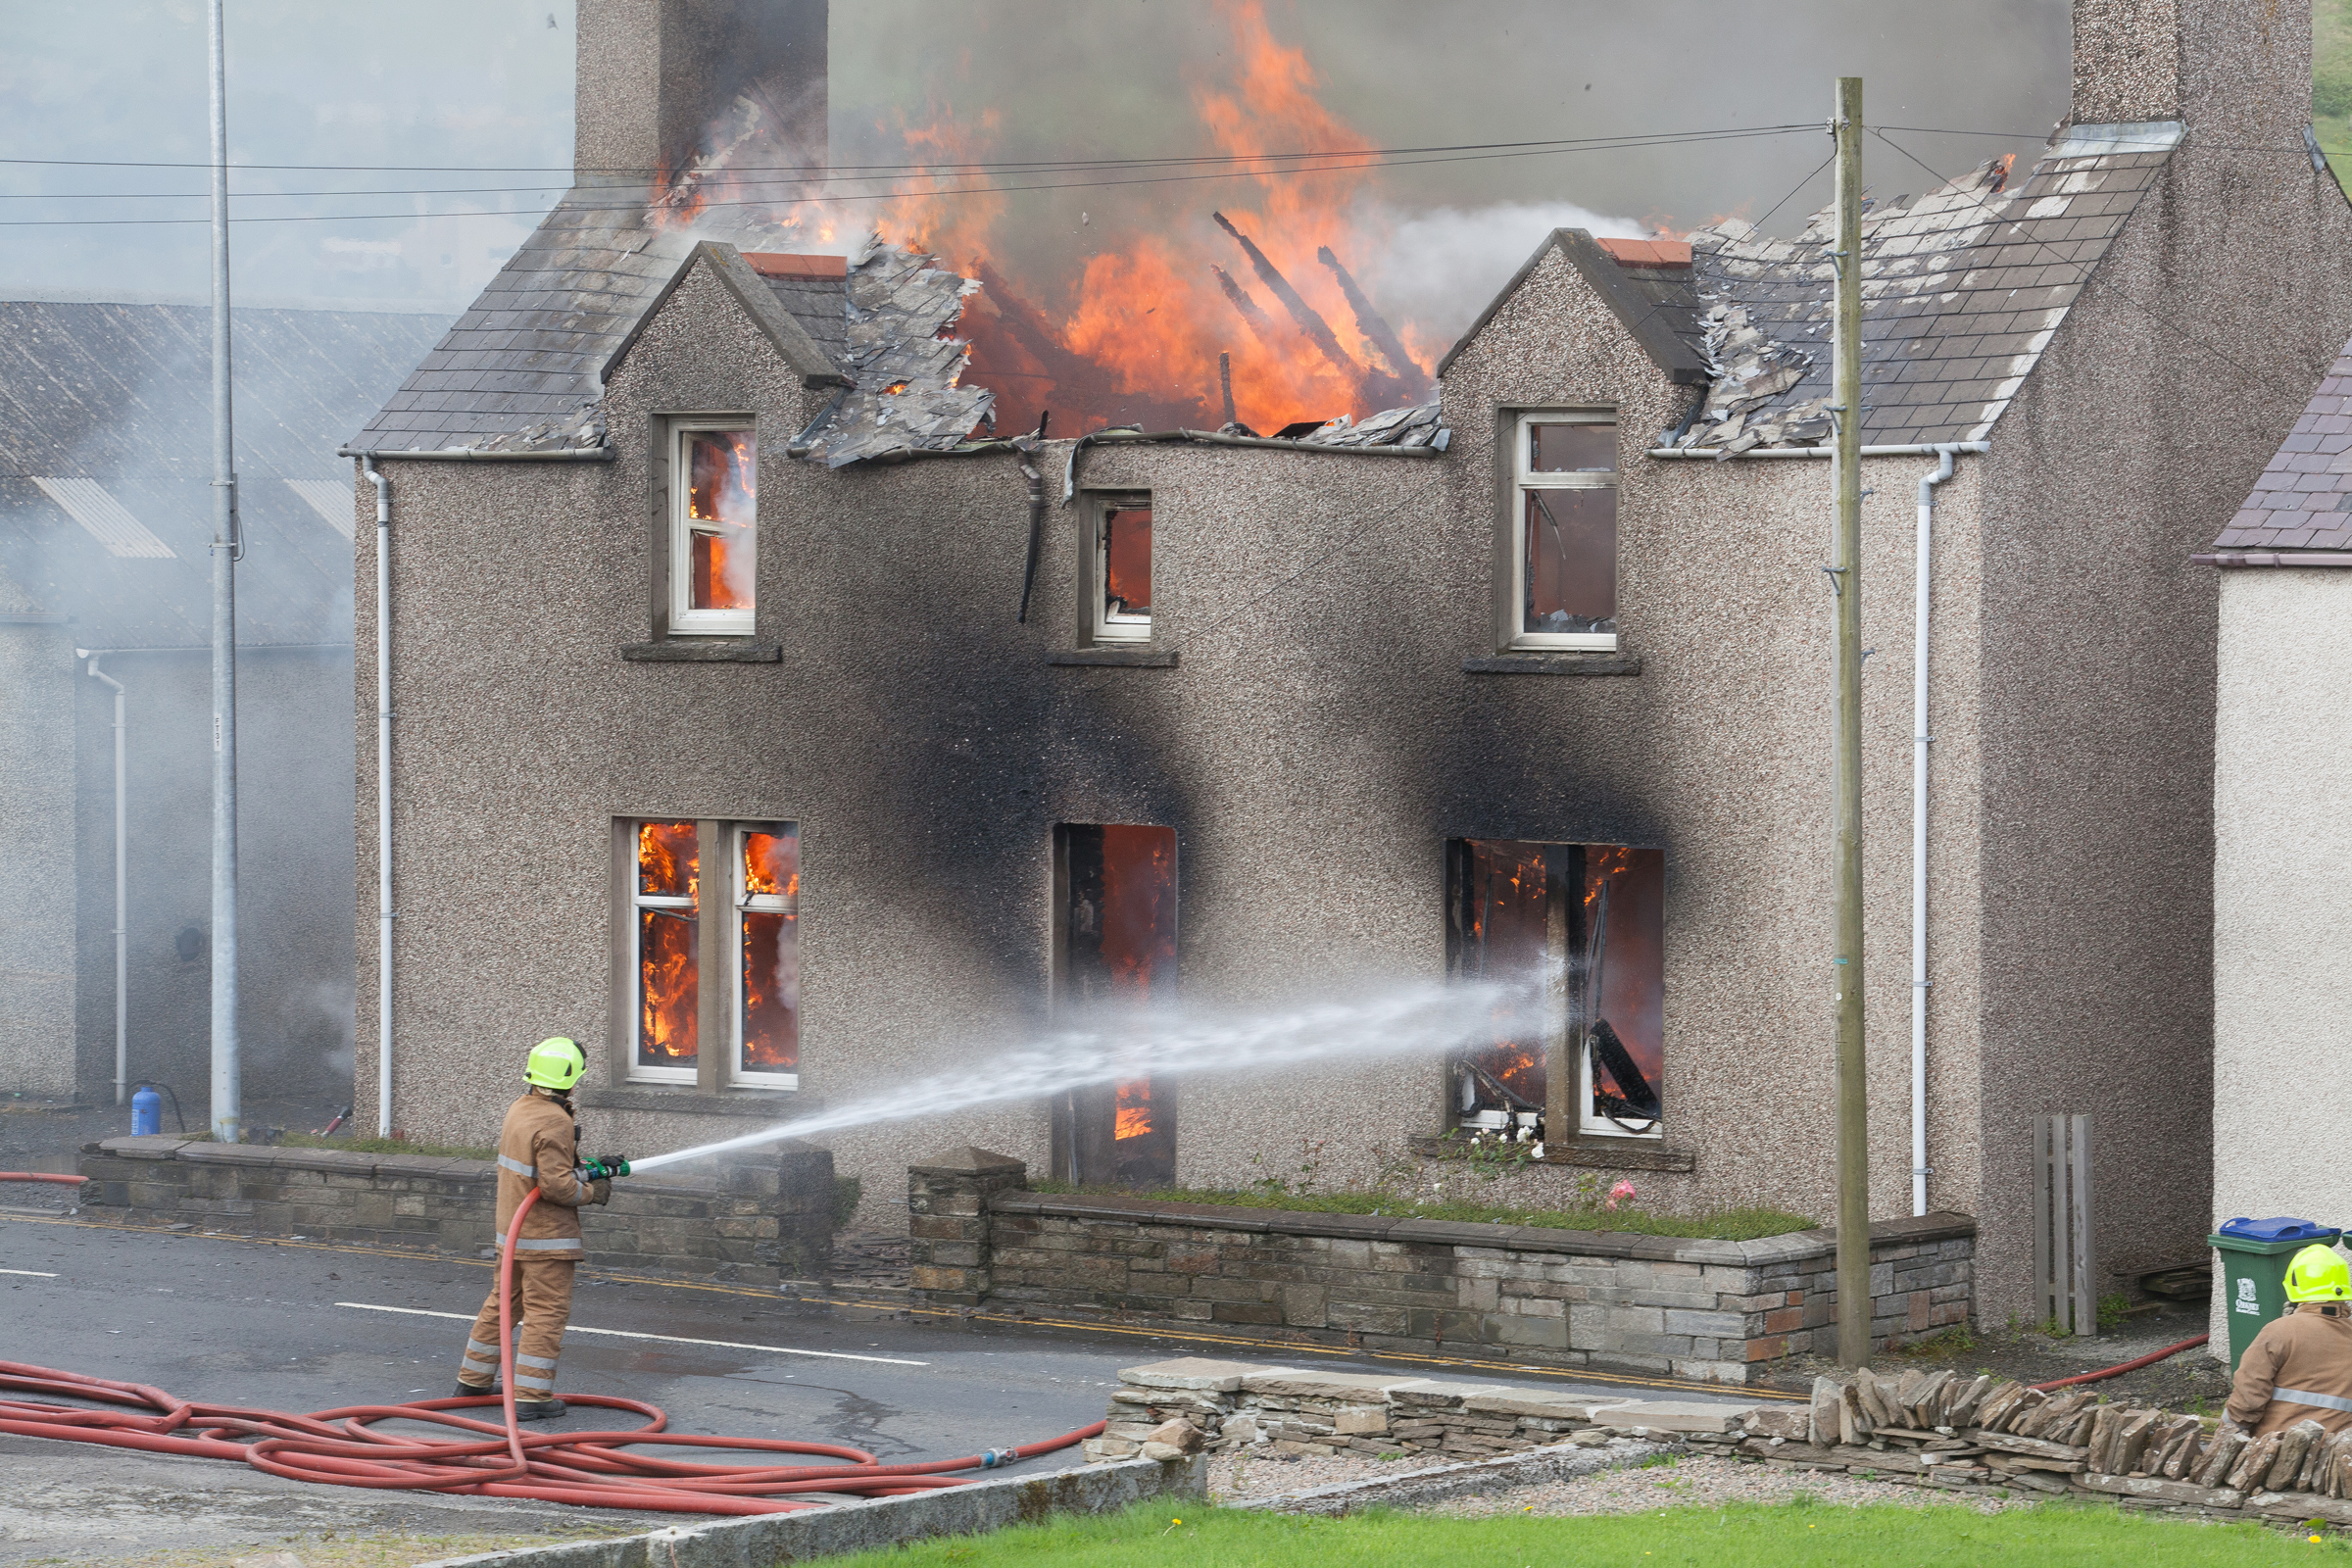 Fire units from both Stromness and Kirkwall tackle the house blaze in the village of Finstown. Pic Orkney photographic